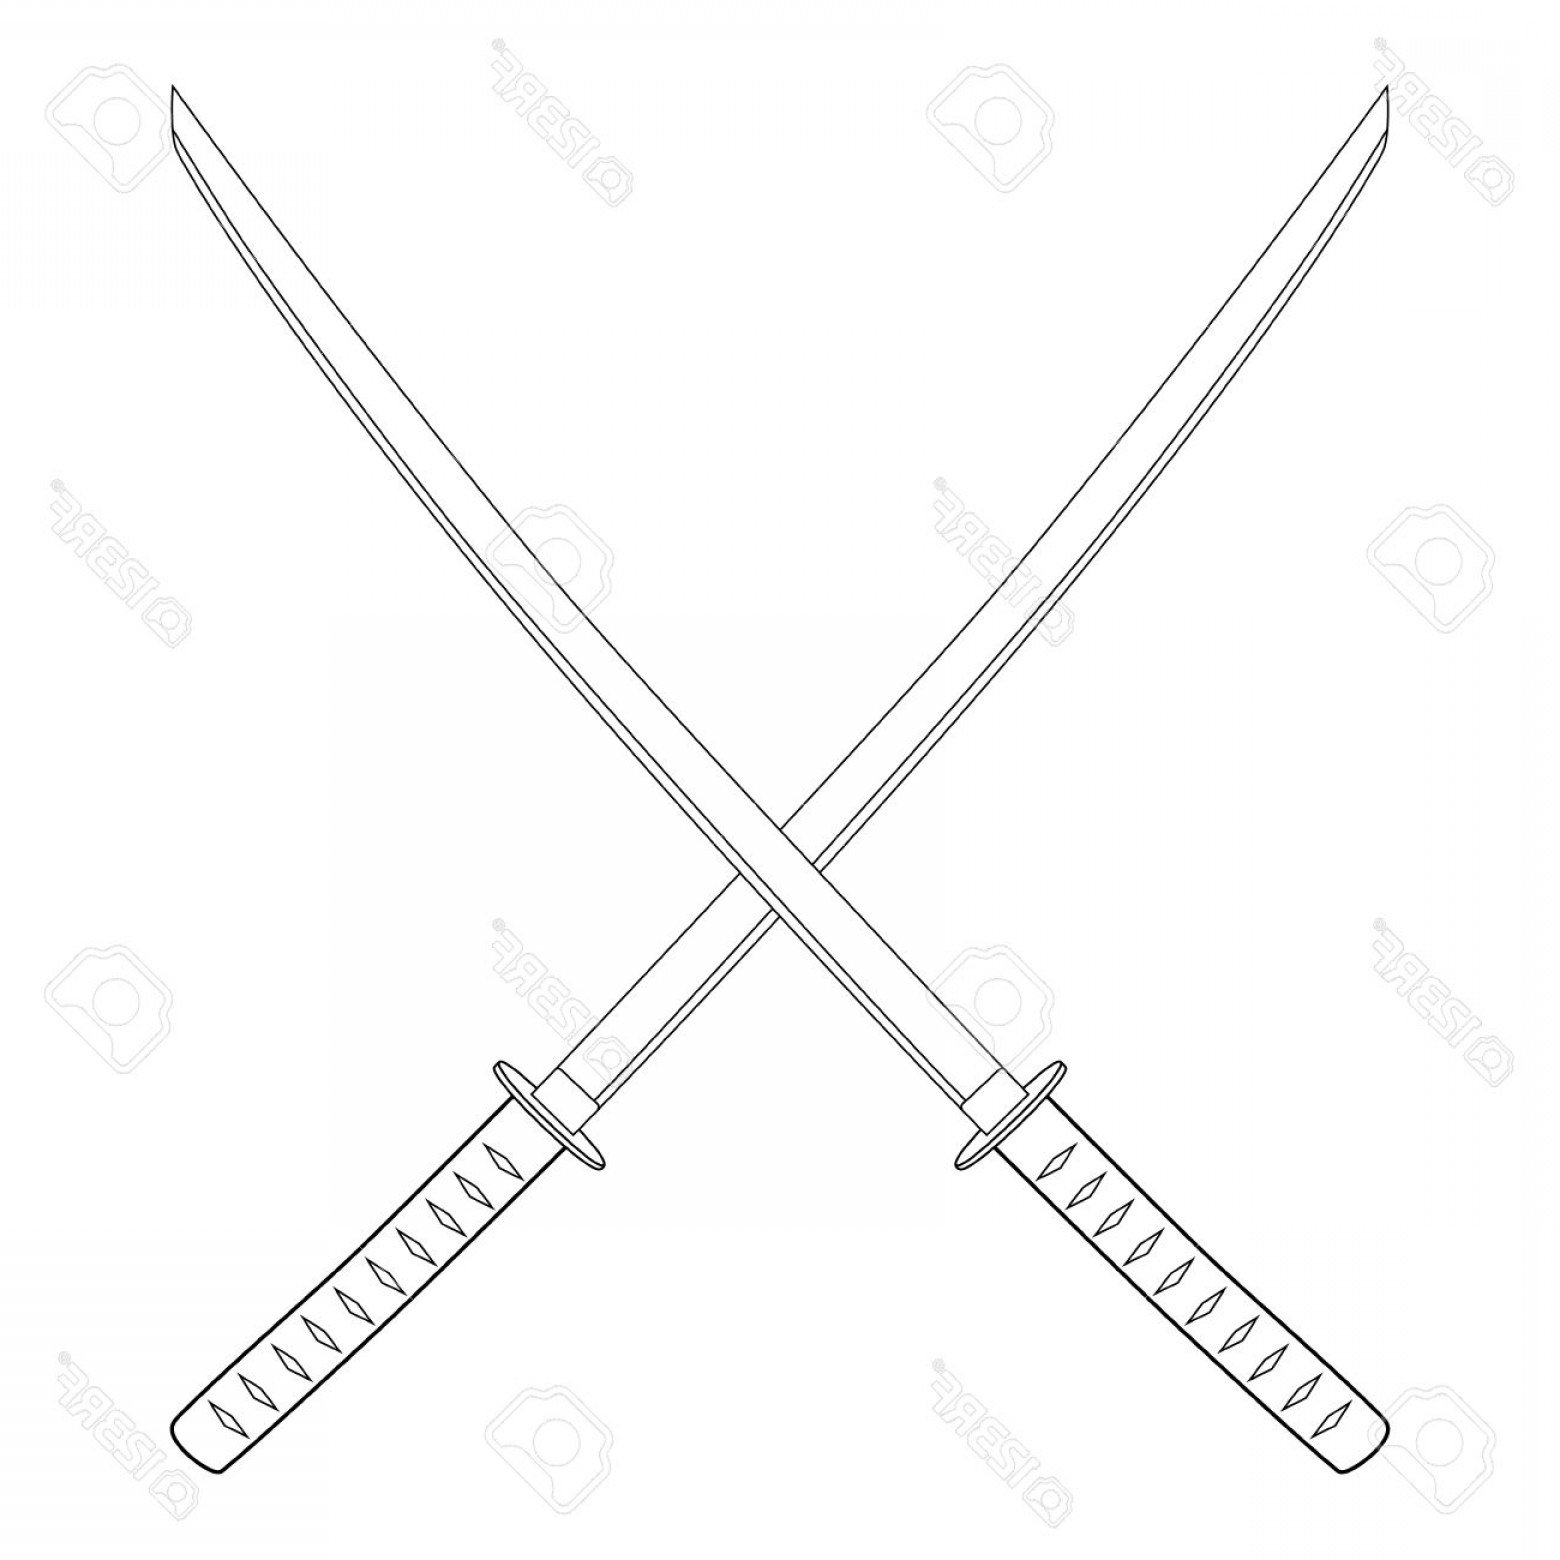 Samuri Sword Vector: Photostock Vector Vector Illustration Crossed Japanese Katana Swords Outline Drawing Samurai Sword Traditional Weapon